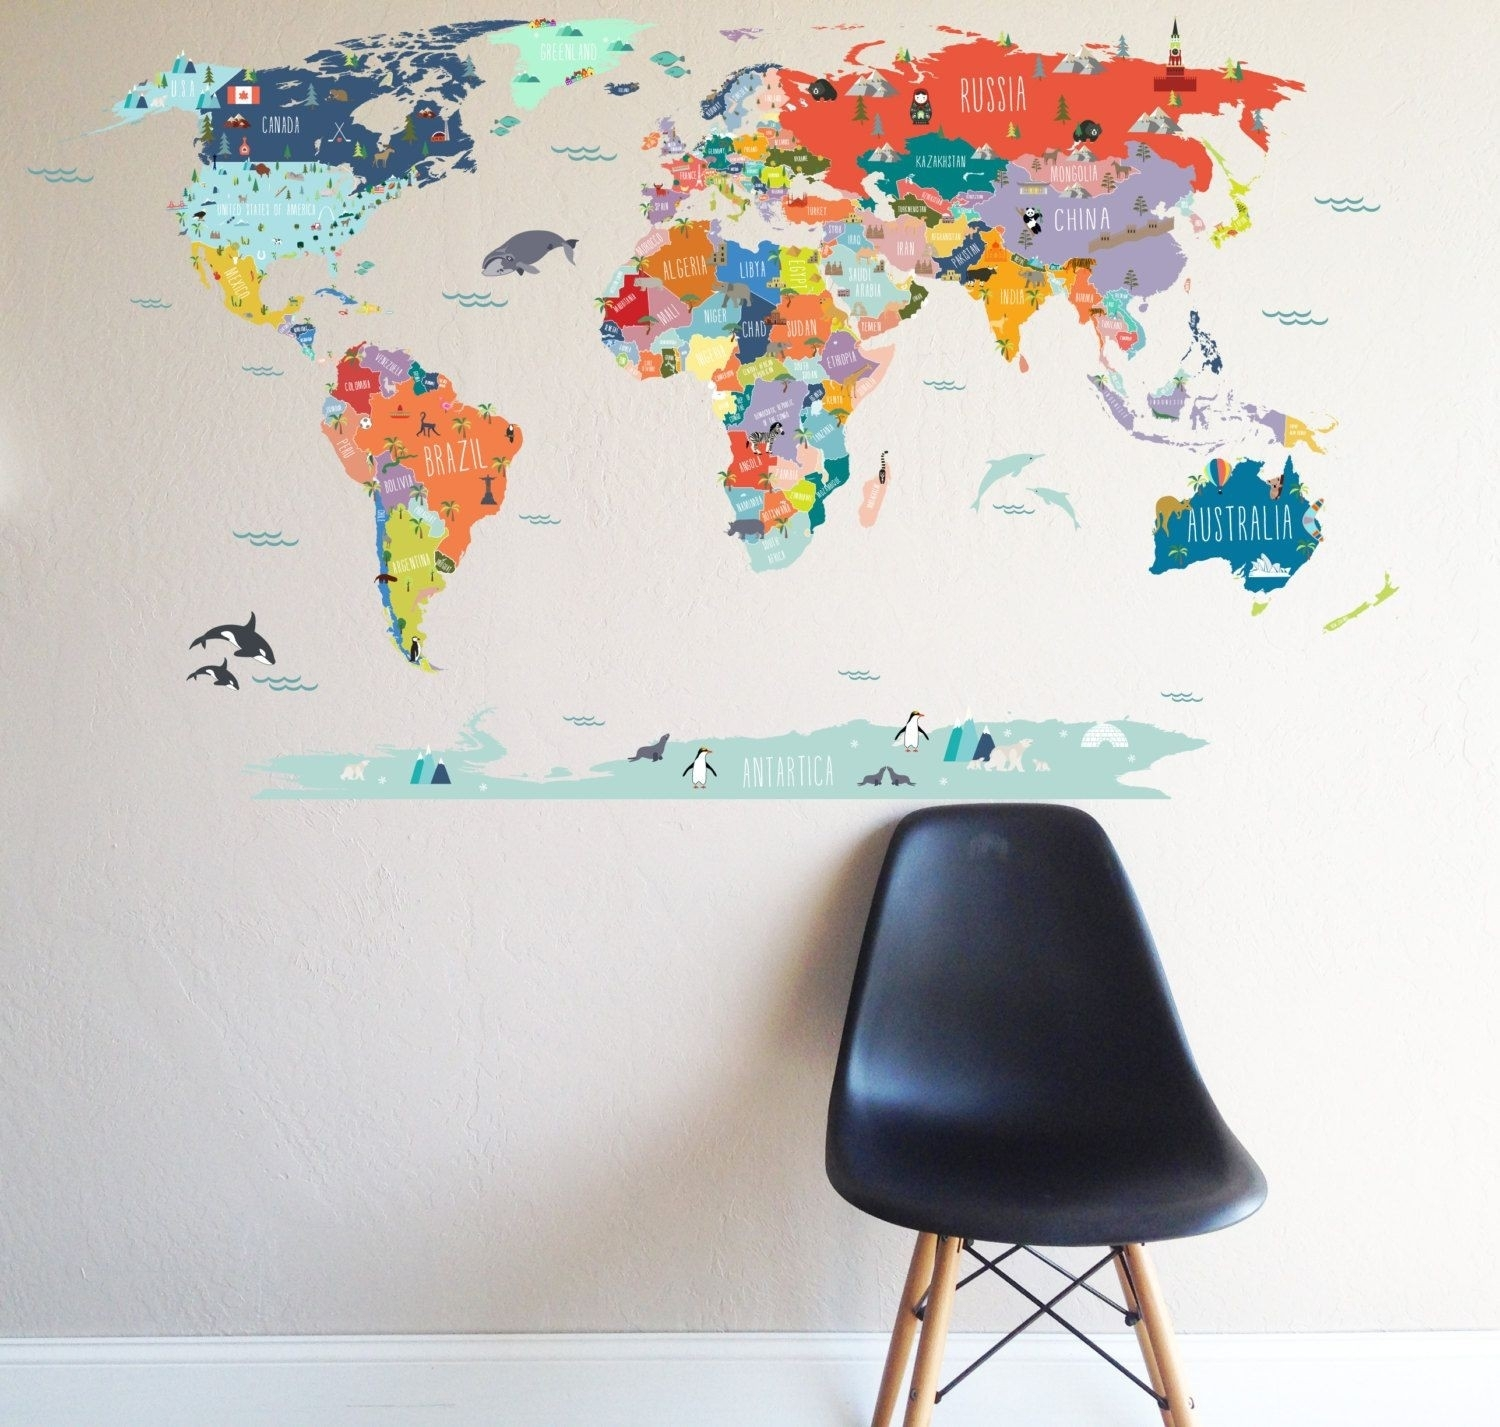 World Map Wall Decal 1 | Free Maps World Wide With Regard To Map Of The World Wall Art (Photo 10 of 20)